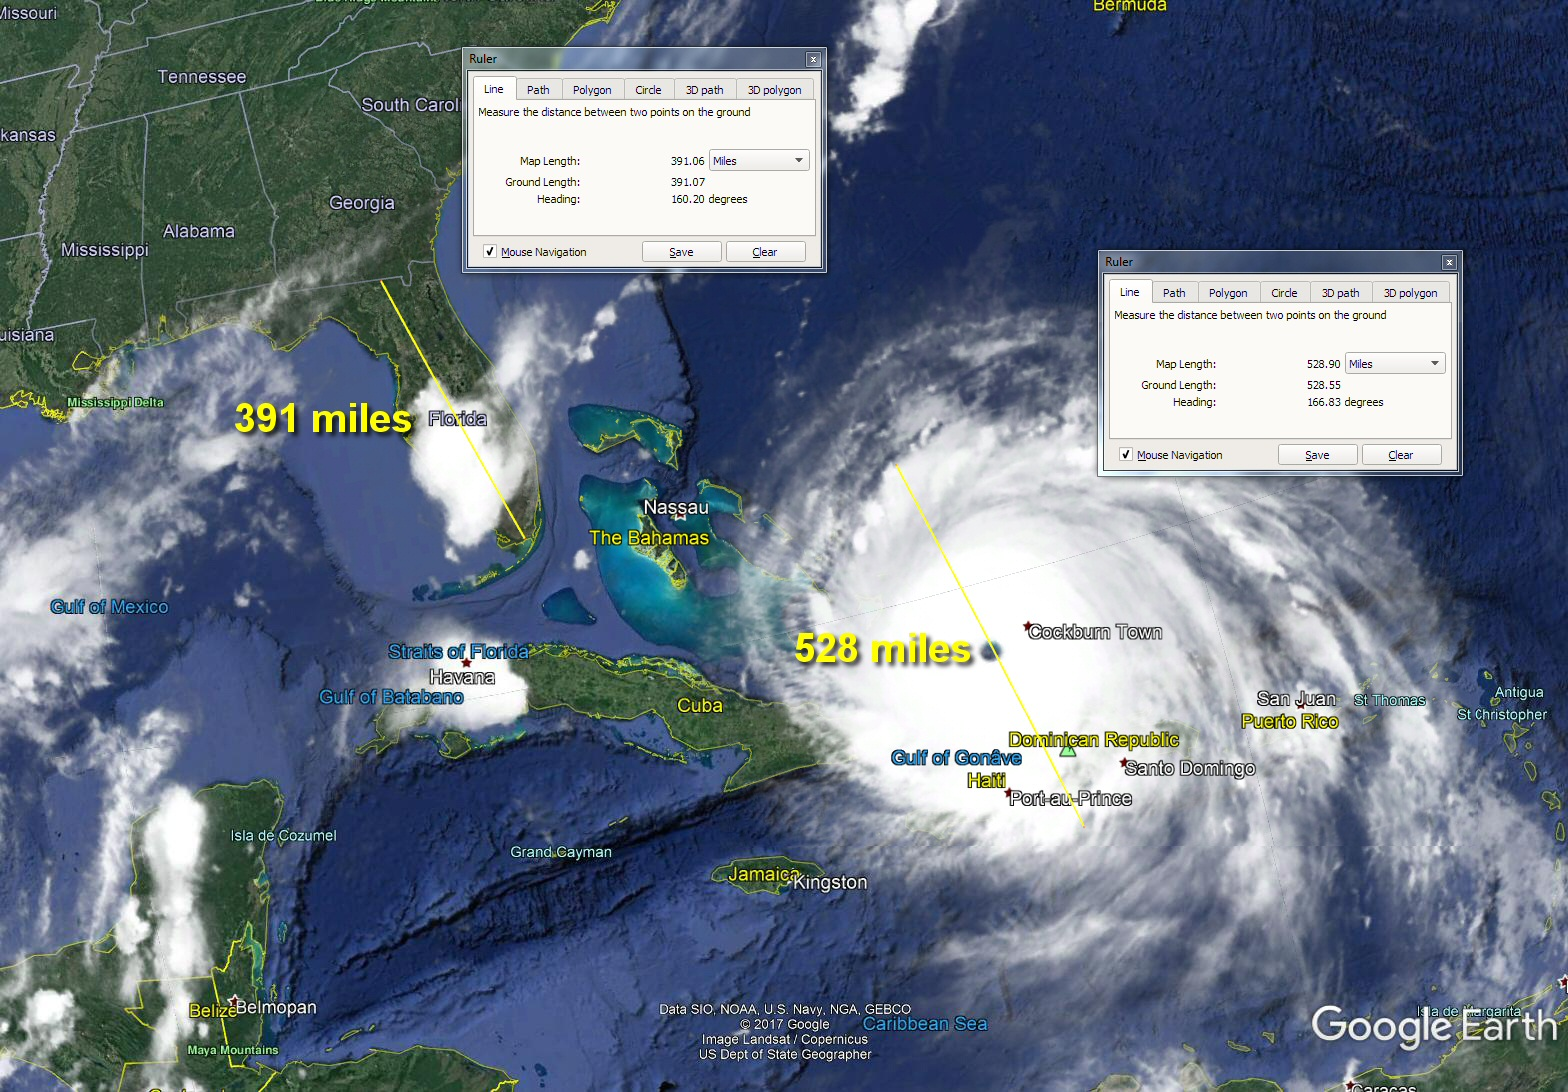 Sh sh show me my house on google earth - Measuring The Size Of Irma Based On The Densest Cloud Bands It Shows 528 Miles In Diameter From Outer Dense Cloud Bands Through The Eye